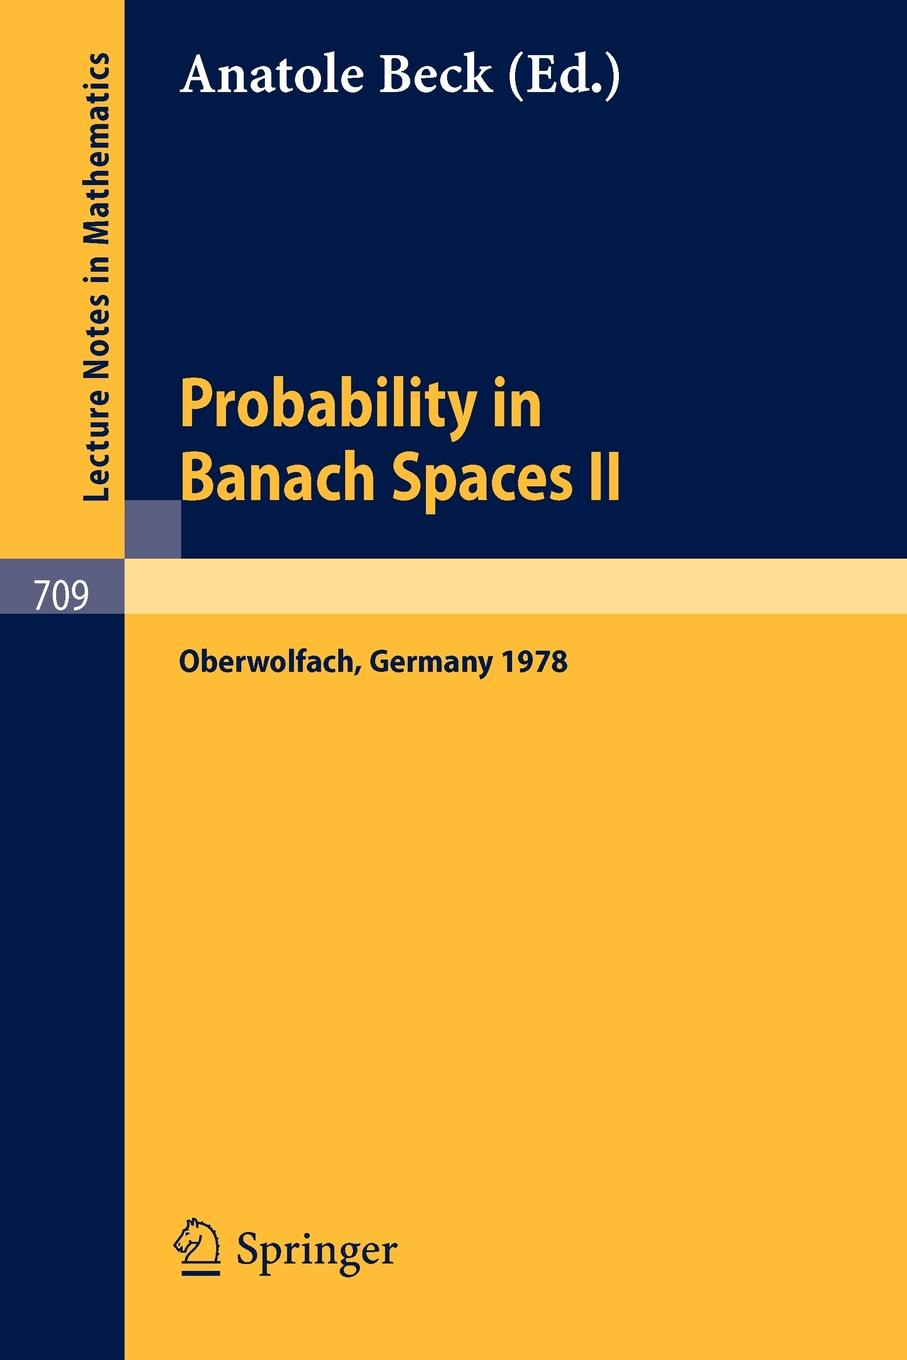 Probability in Banach Spaces II. Proceedings of the Second International Conference on Probability in Banach Spaces, 18-24 June 1978, Oberwolfach, Germany цены